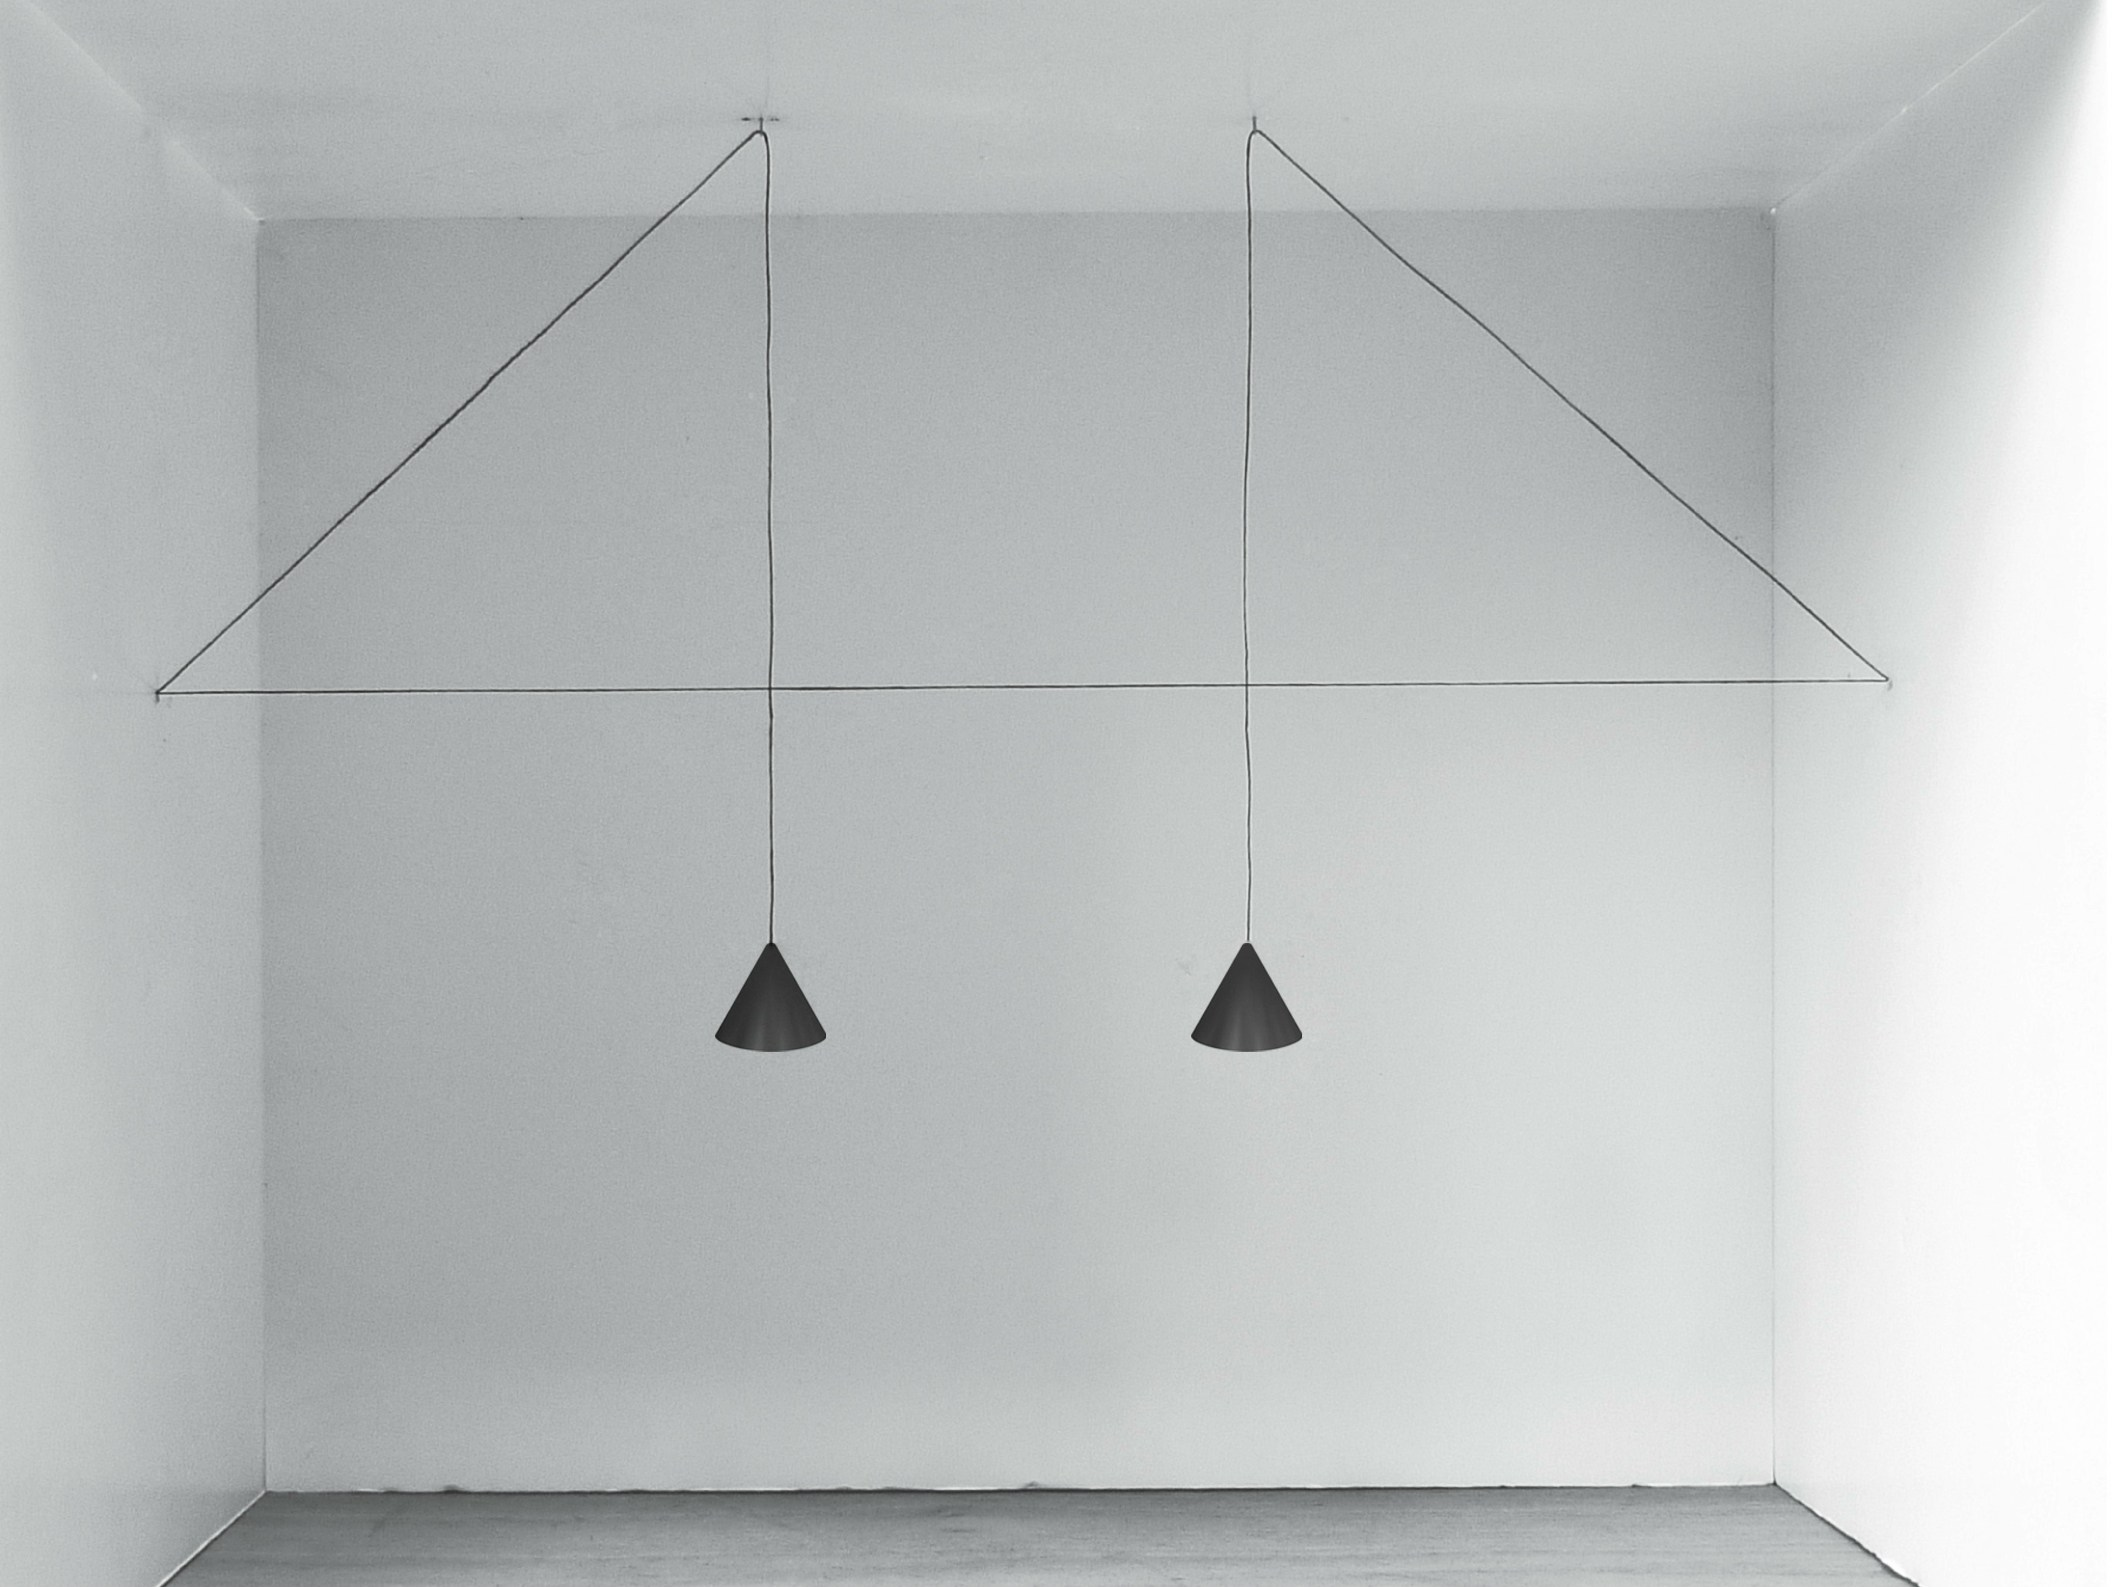 Led Pendant Lamp String Light Cone Head By Flos Design